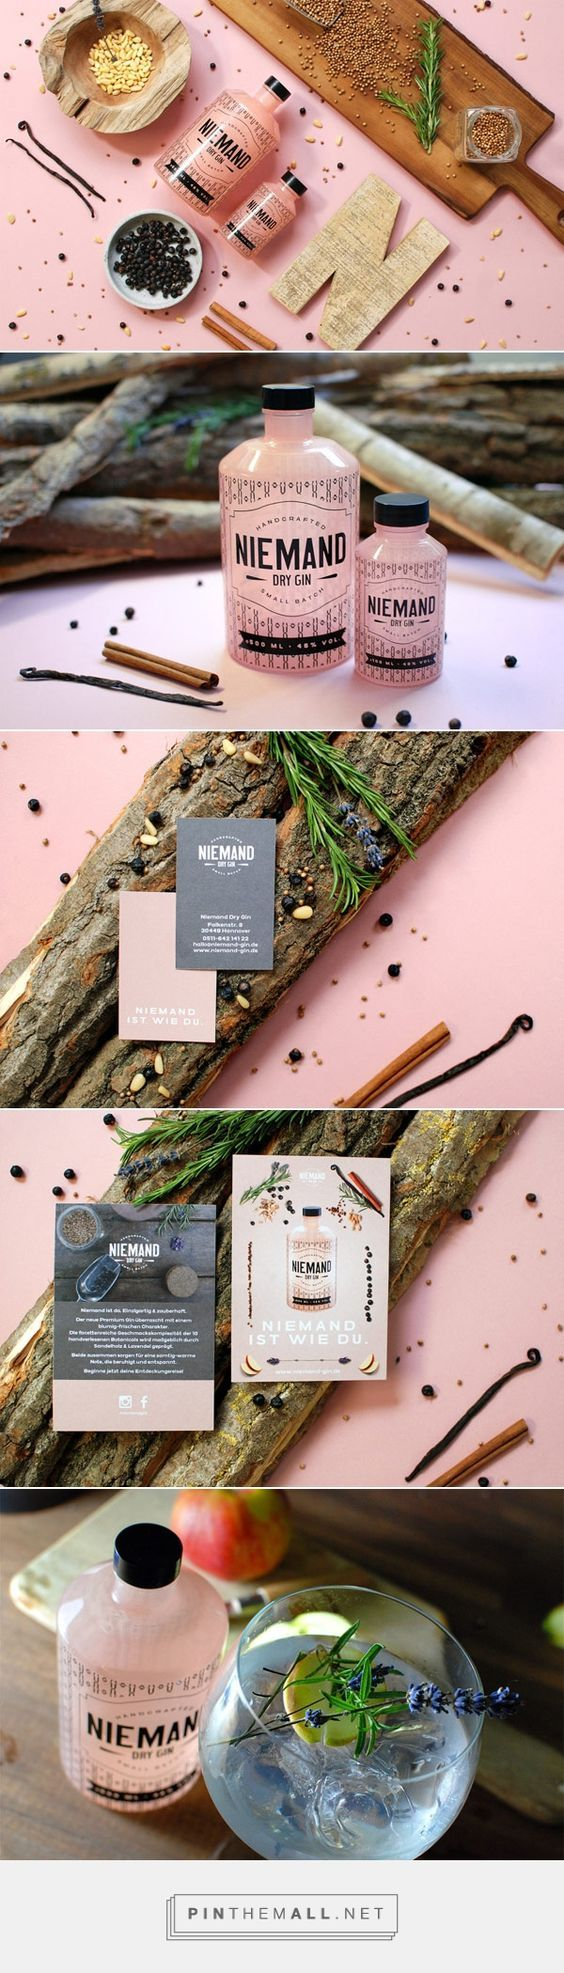 Niemand Dry Gin Branding and Packaging by Qoop   Fivestar Branding Agency – Design and Branding Agency & Curated Inspiration Gallery